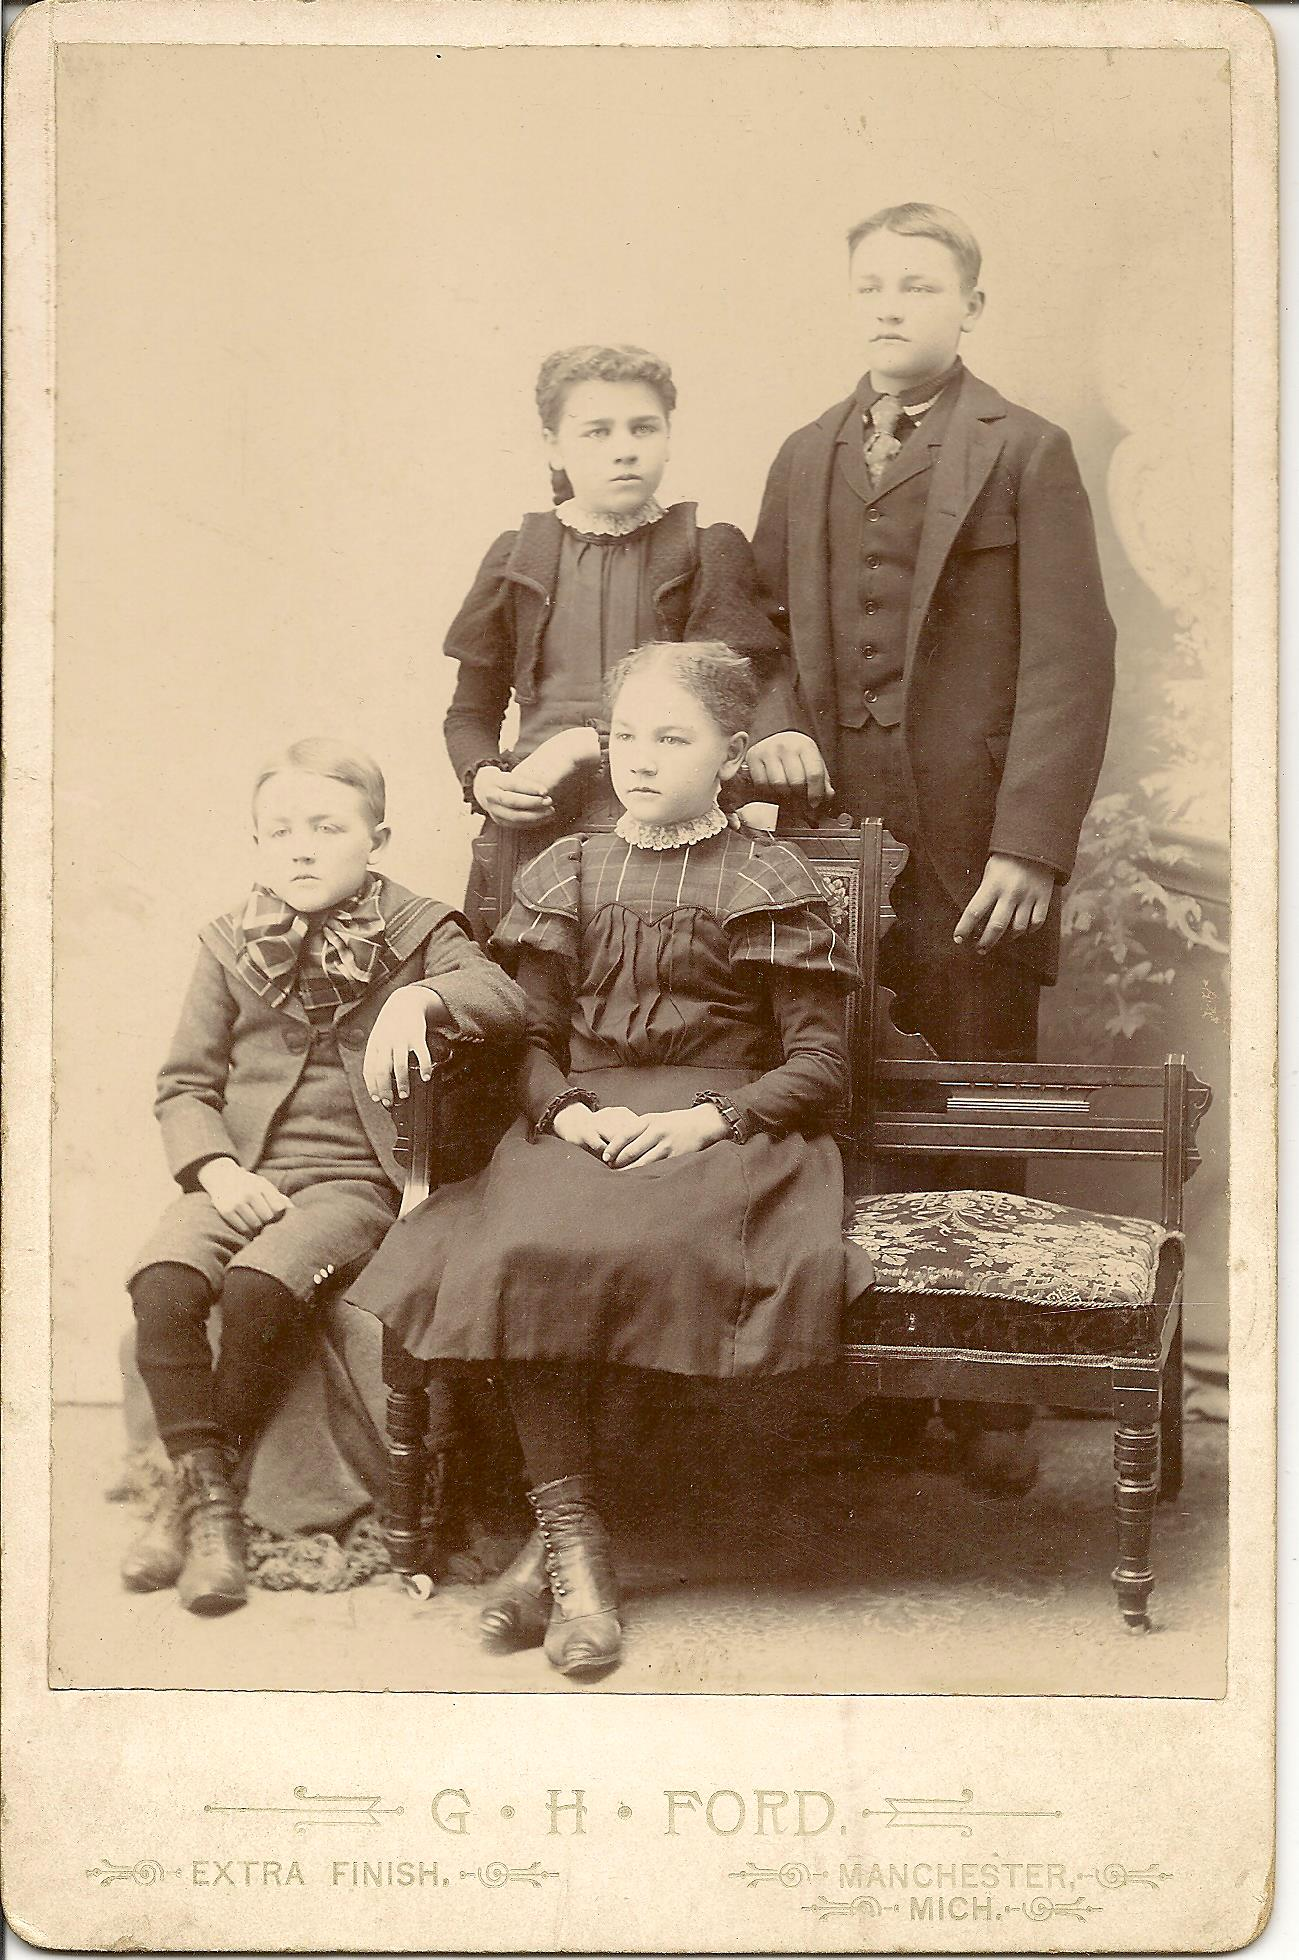 George, Esther, Mable, Reuben Sodt 001